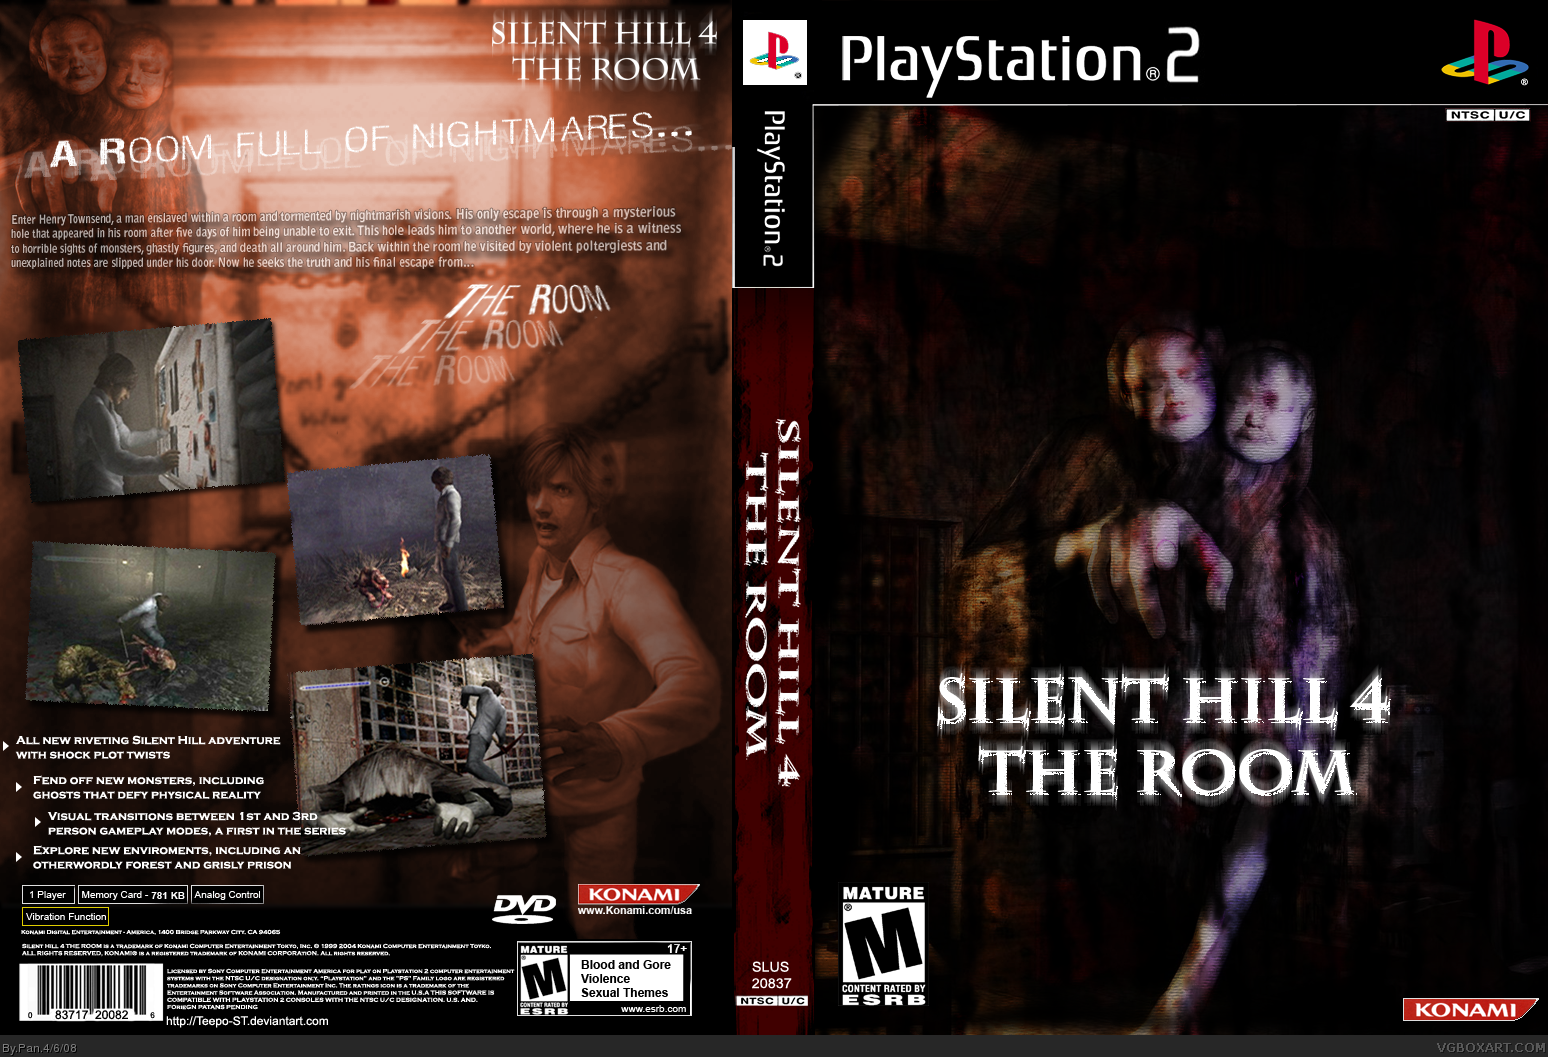 Silent Hill 4: The Room PlayStation 2 Box Art Cover by Pan